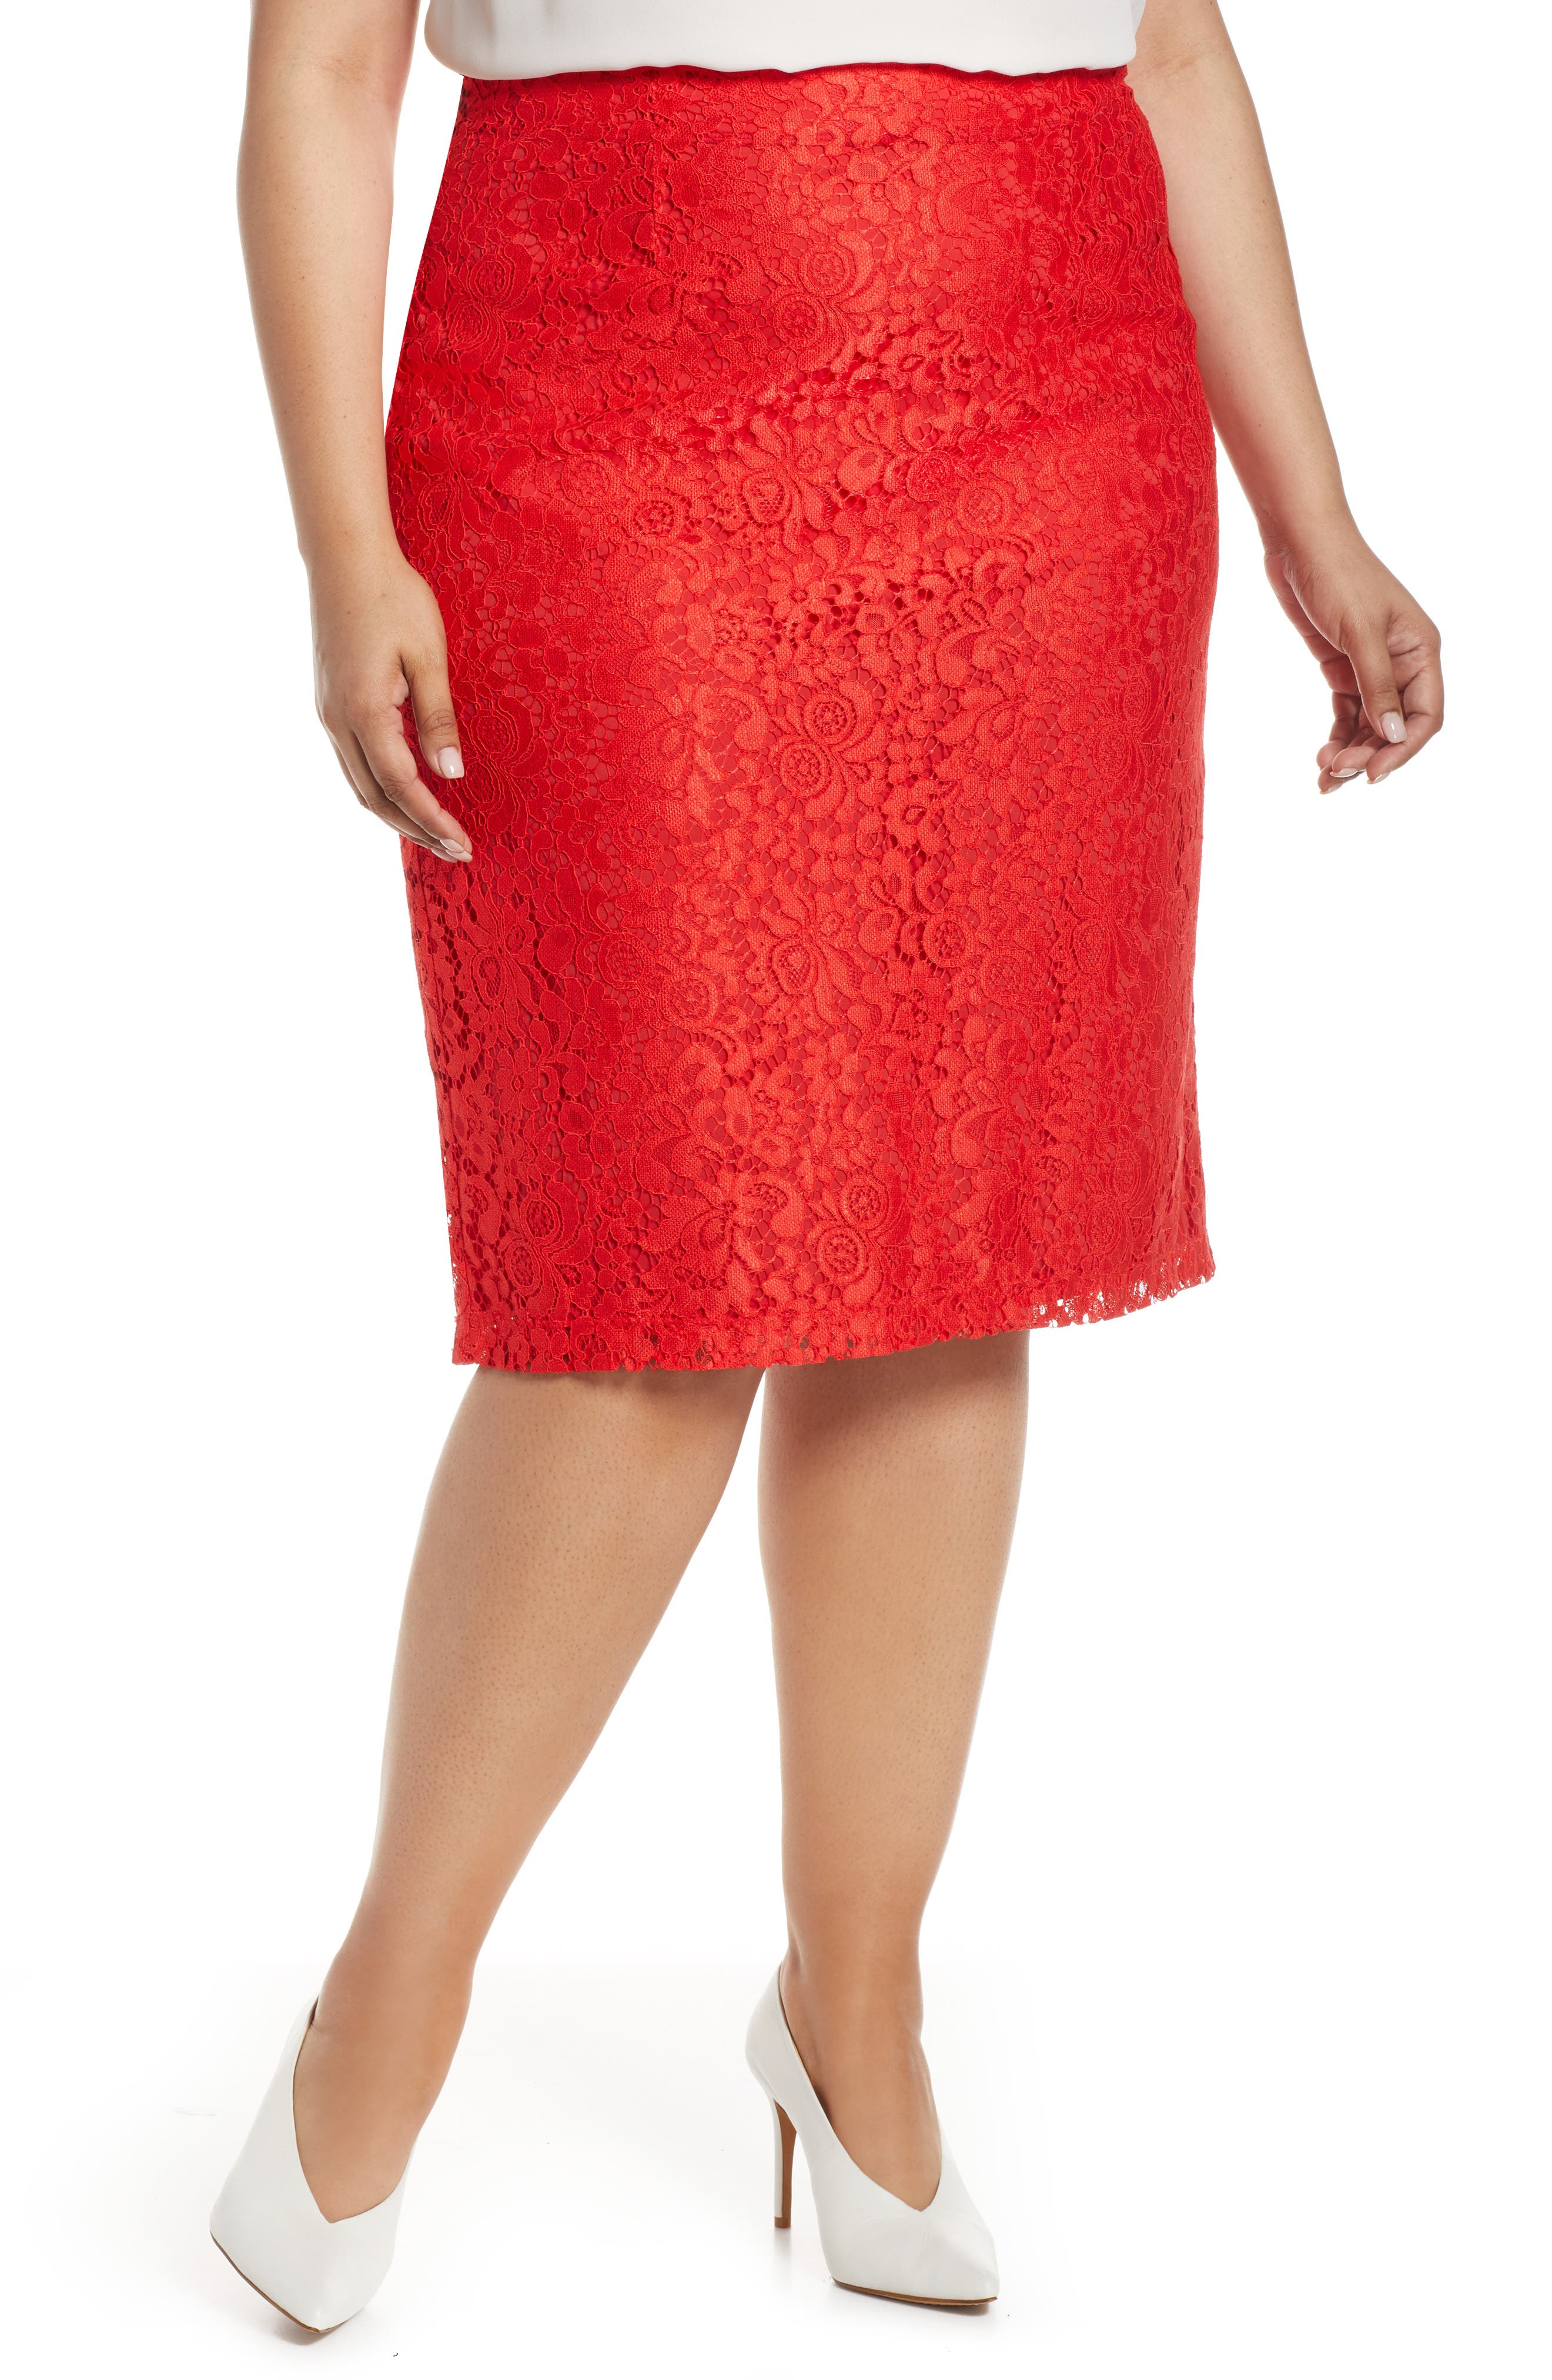 Halogen Lace Pencil Skirt, 8 (similar to 16W) - Red